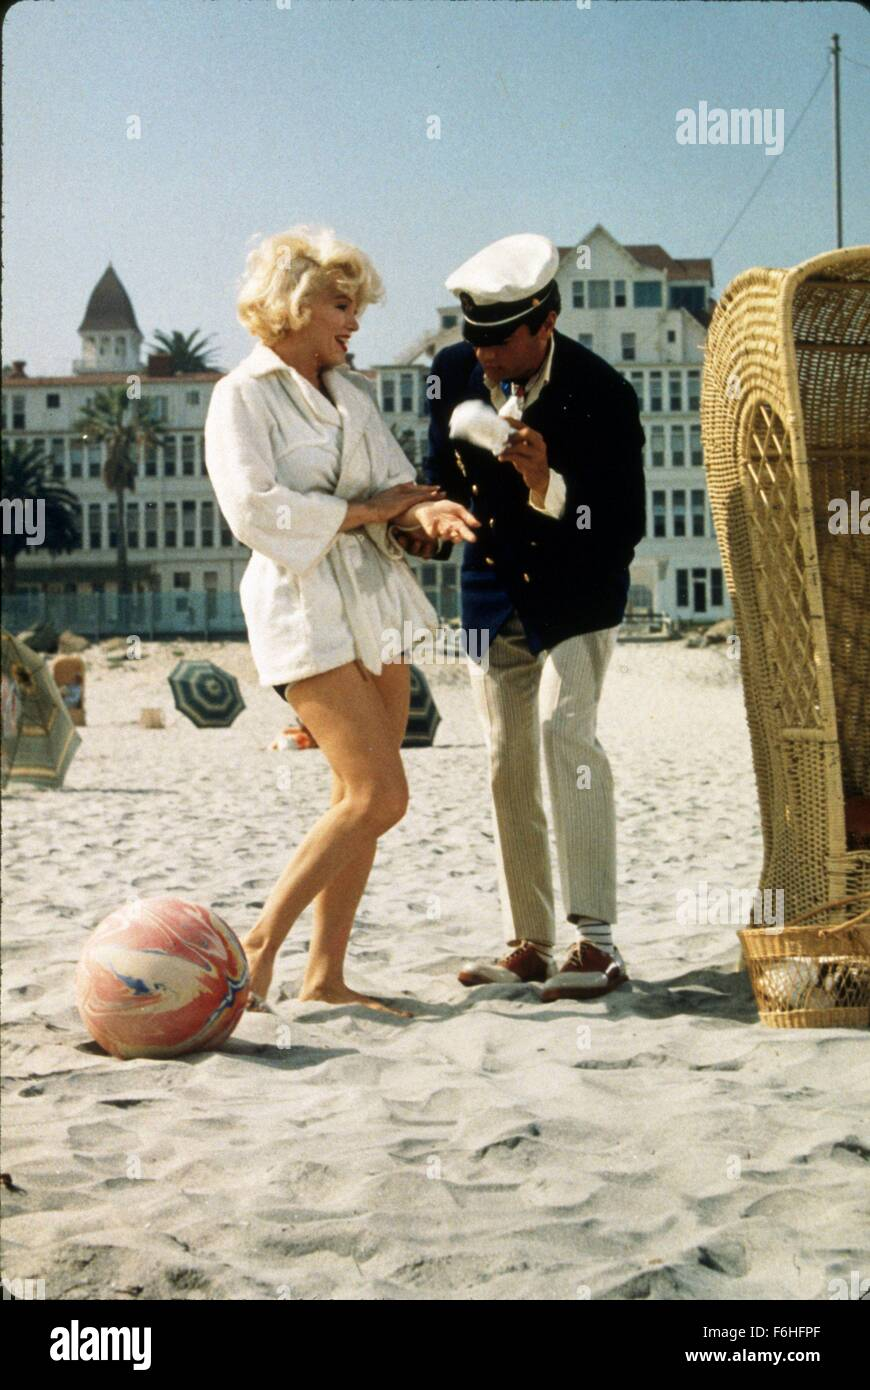 1959, Film Title: SOME LIKE IT HOT, Director: BILLY WILDER, Studio: UA, Pictured: SUNNY, 1959, BEACH, BEHIND THE - Stock Image